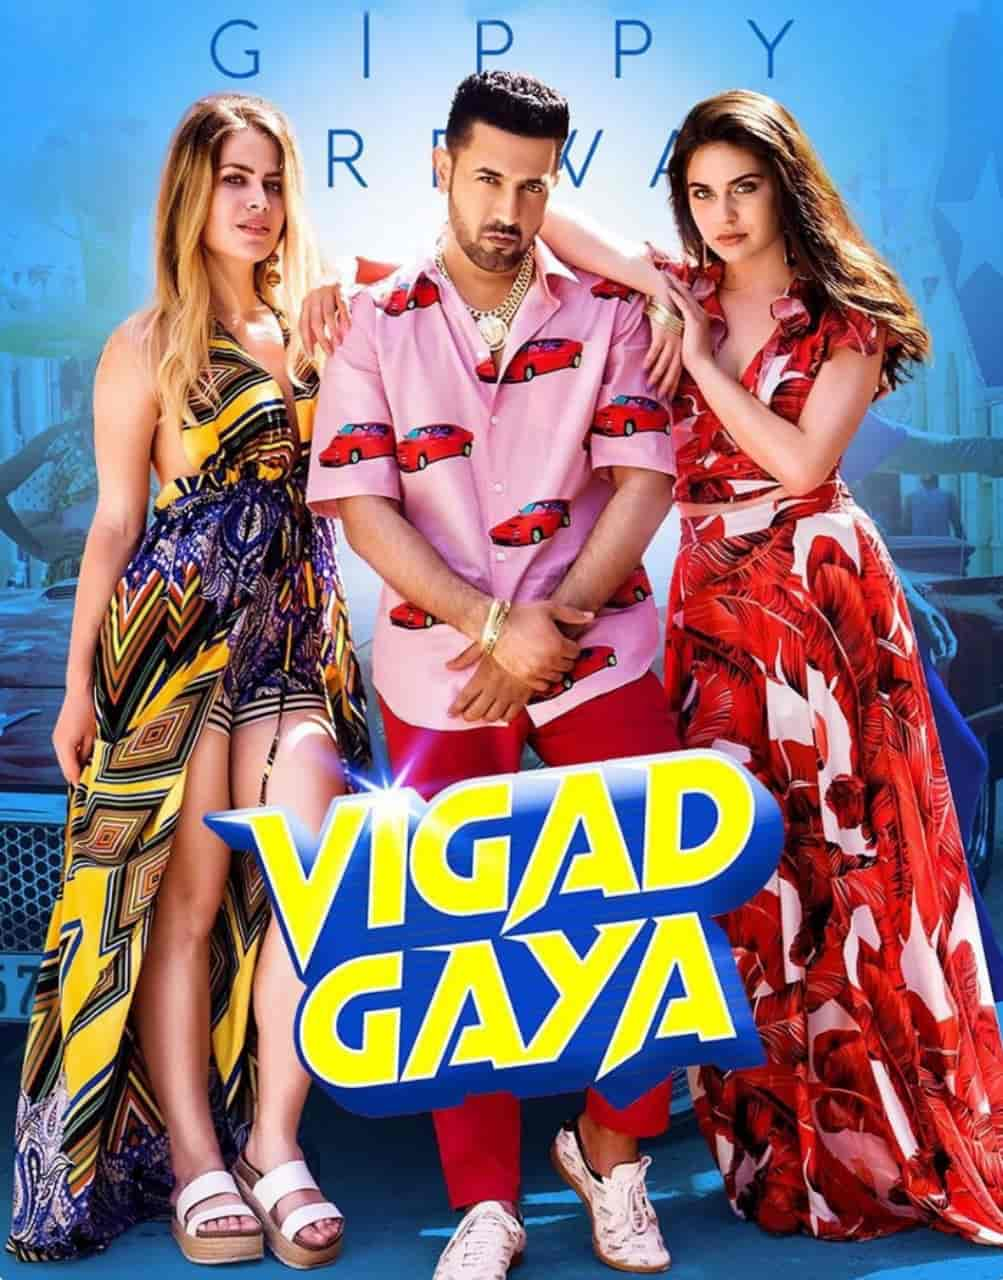 GABRU JE VIGAD GAYA song image by Gippy Grewal